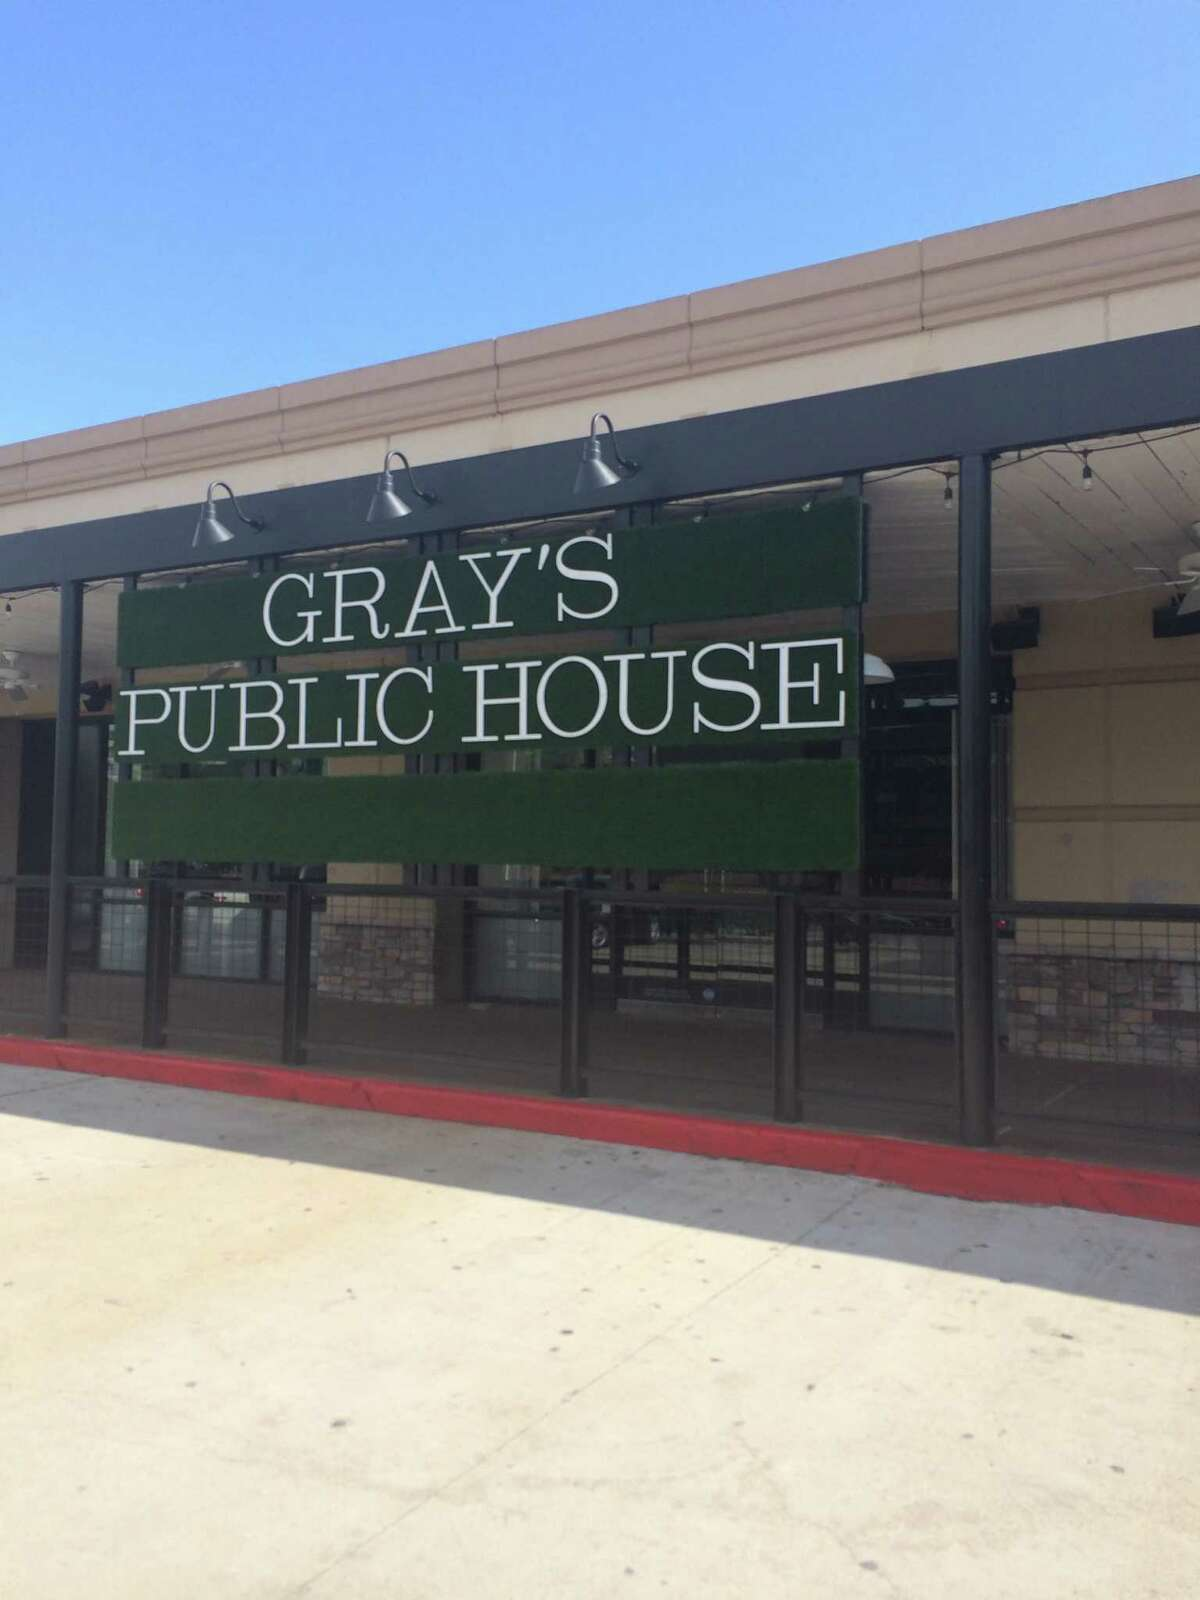 Gray's Public House, 510 Gray St., offers more than 50 brands of canned beer from small, independent brewers.